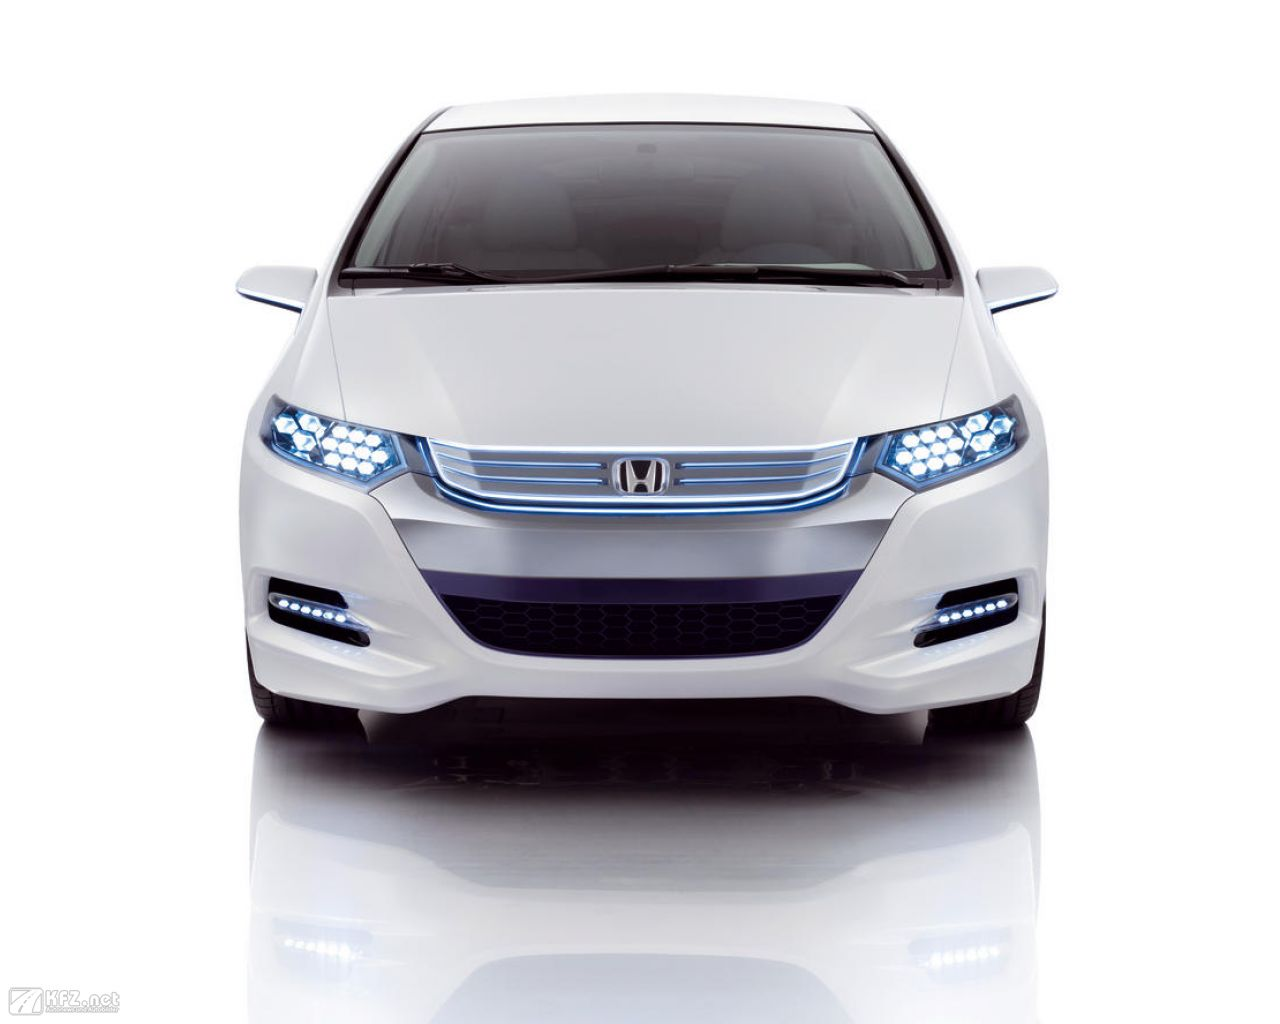 honda-insight-1280x1024-110